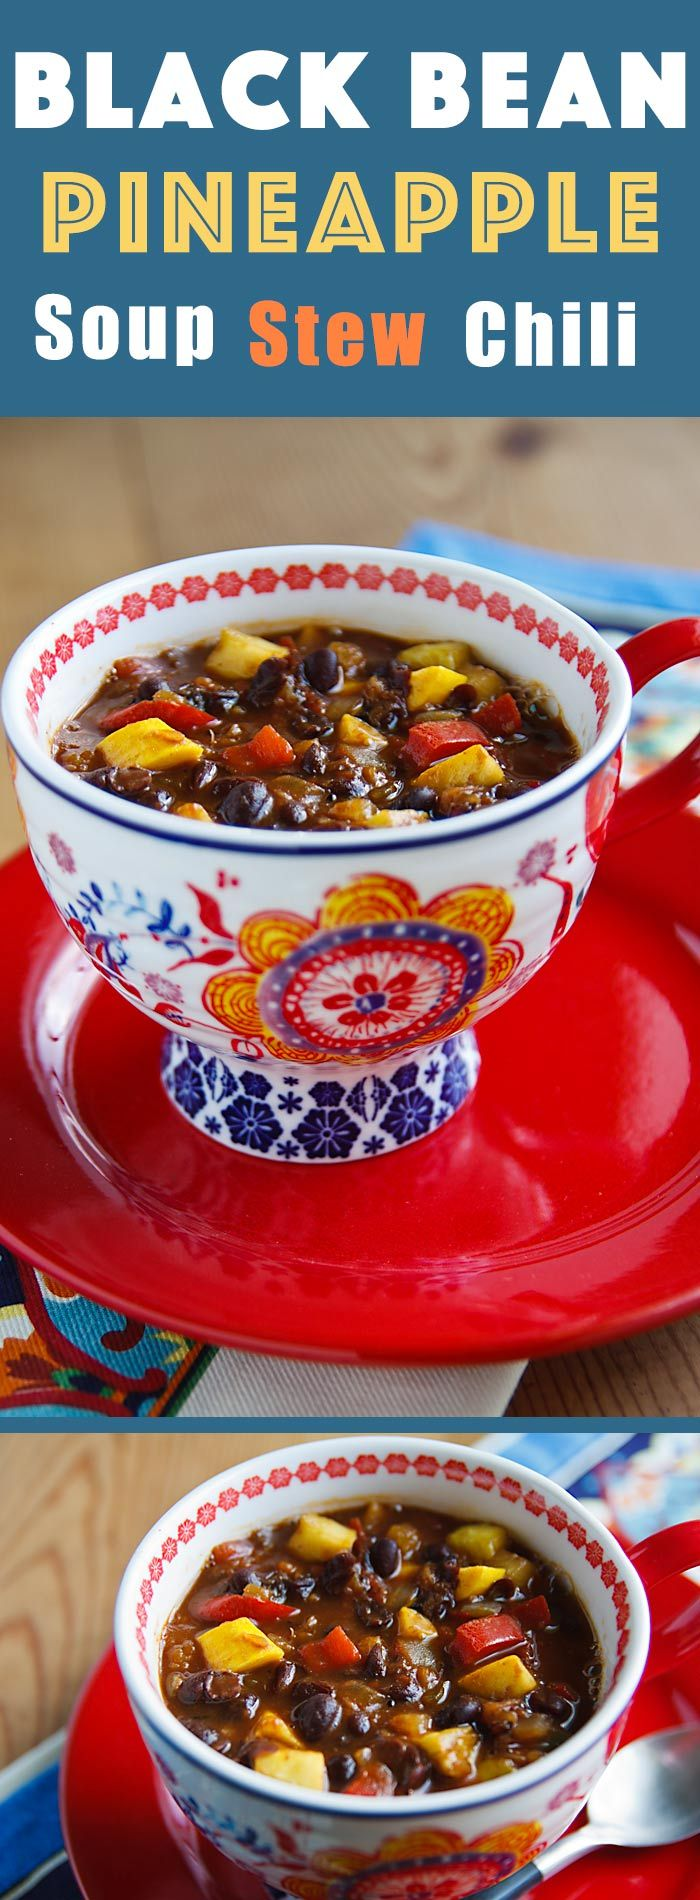 Thicker than a soup, thinner than a chili, and probably most like a stew, this unique dish combines black beans and pineapple with delicious results.